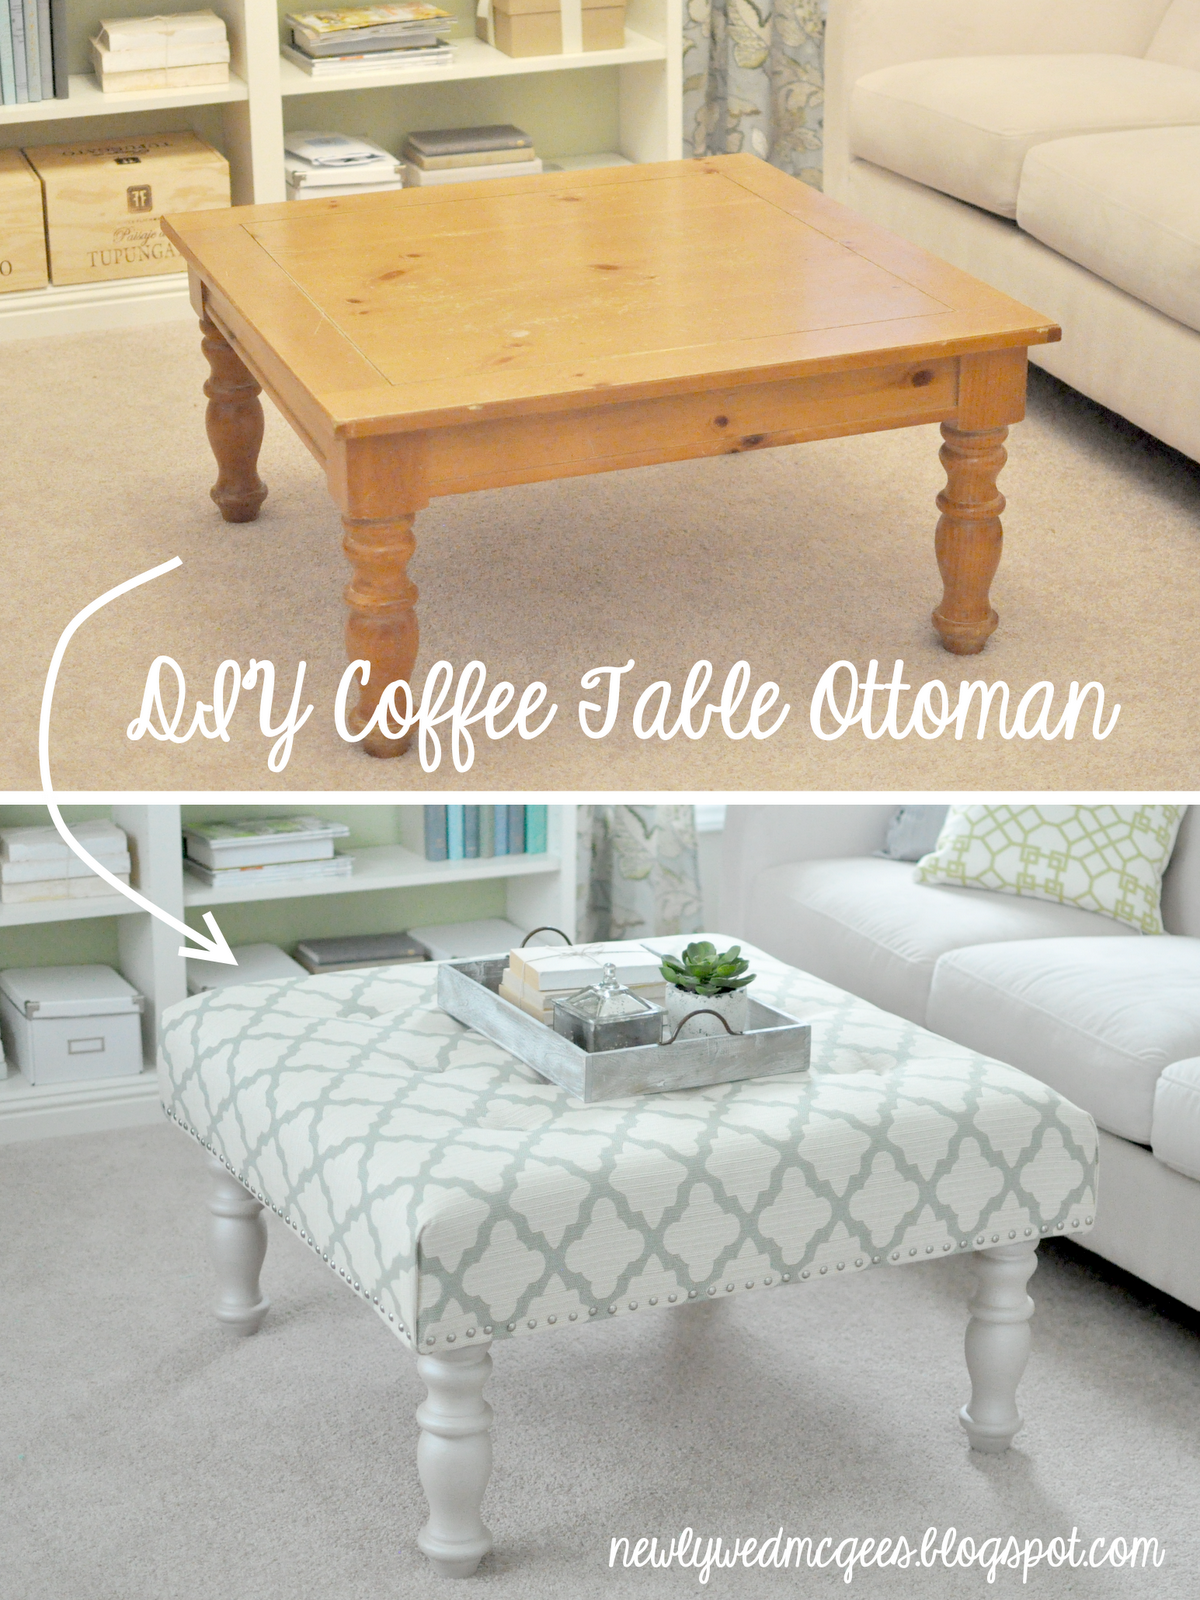 diy: upholstered ottoman | Linda Tingle | Pinterest | Mesas de café ...